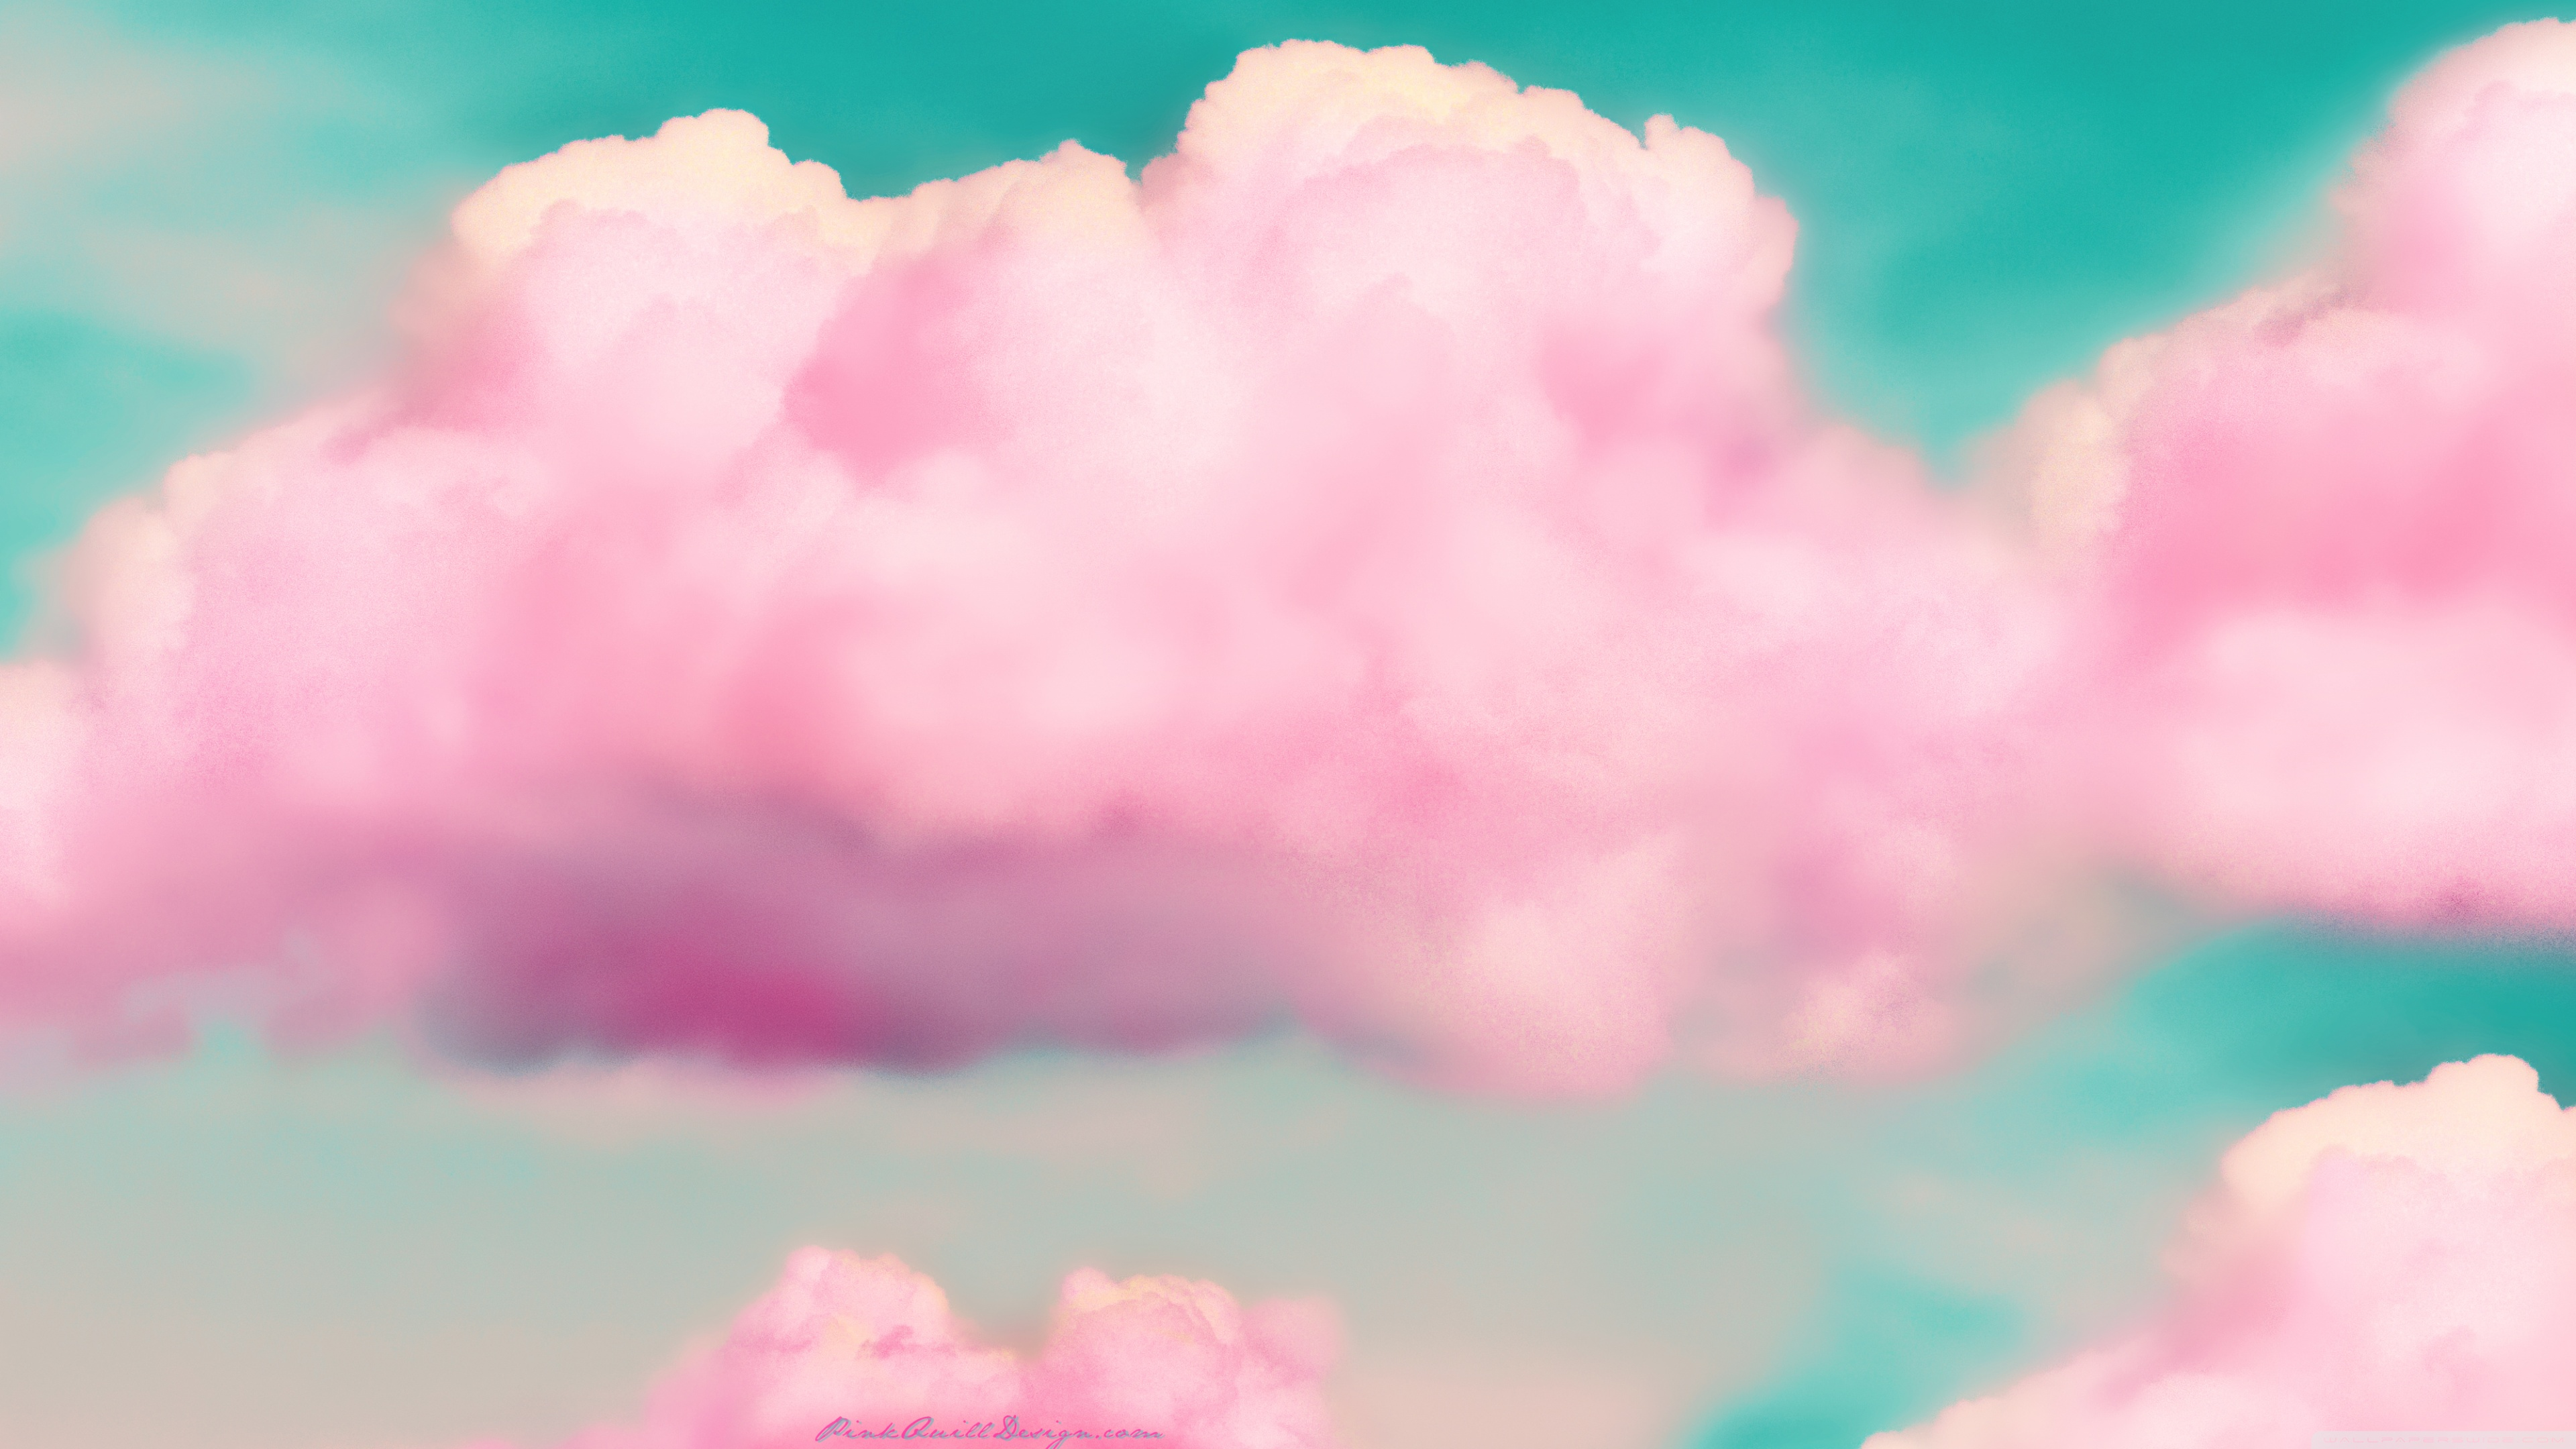 clouds 3d effect wallpaper 38402160 [3840 x 2160] Wallpapers 3840x2160